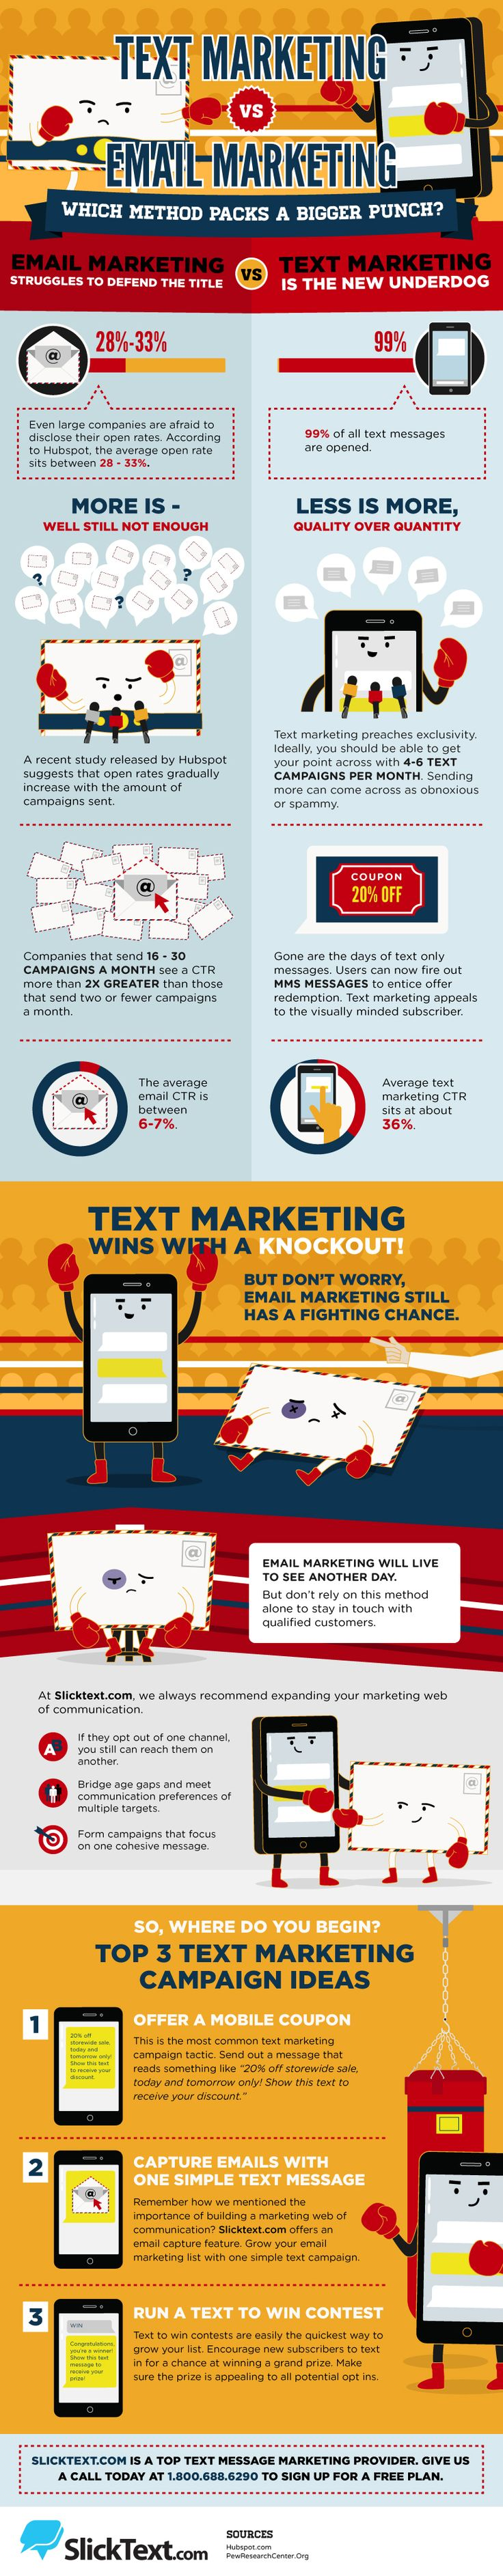 https://social-media-strategy-template.blogspot.com/ Text Message Marketing The average open rate of a text message sits at about 99%, while email ranges from 28-33%. Get your text message marketing campaign started today! KeepingItSimplySo...